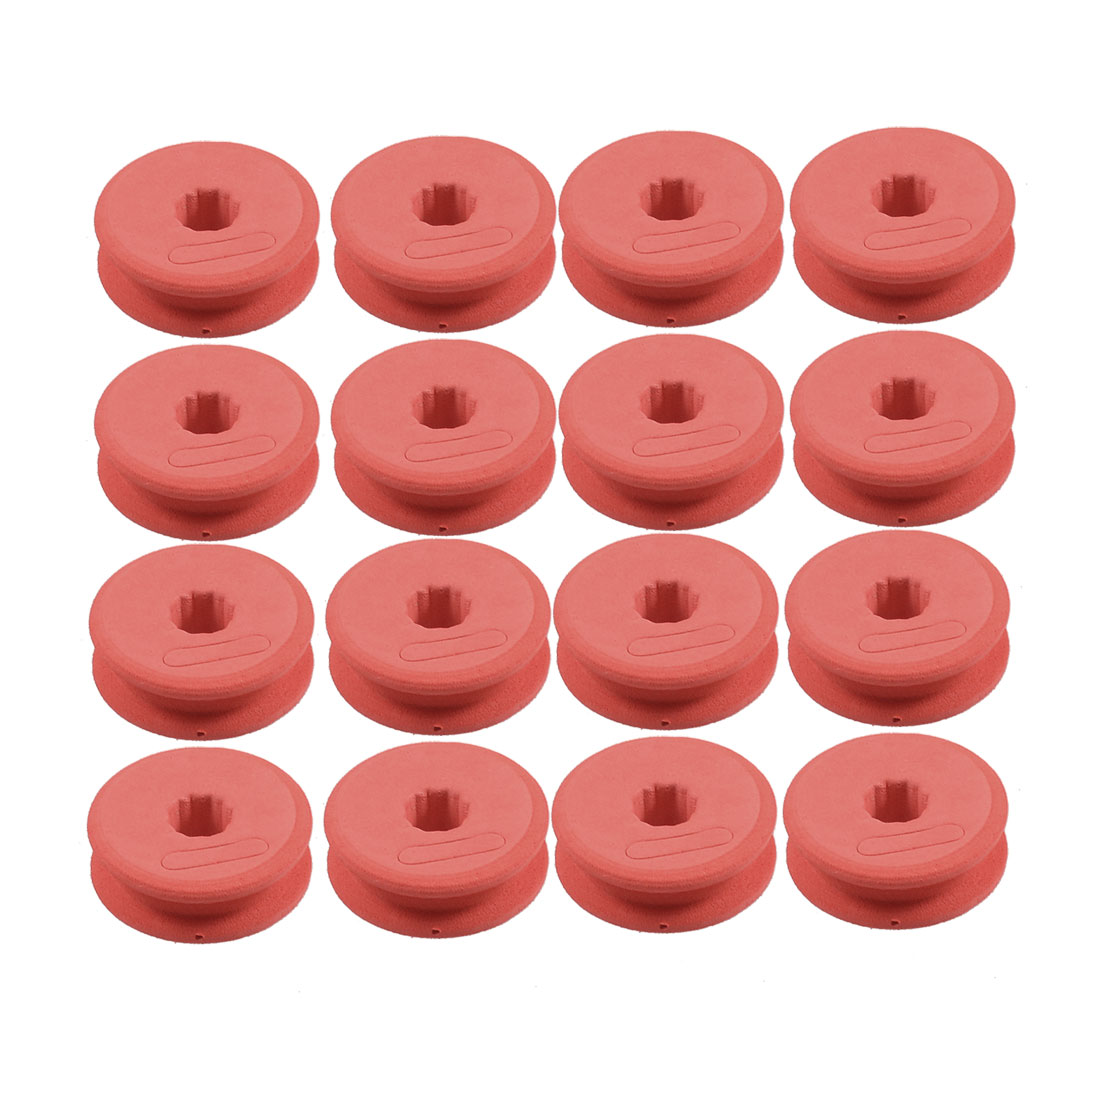 16 Pcs Red Fishing Line Foam Spool w Plastic Rectangle Case Holder